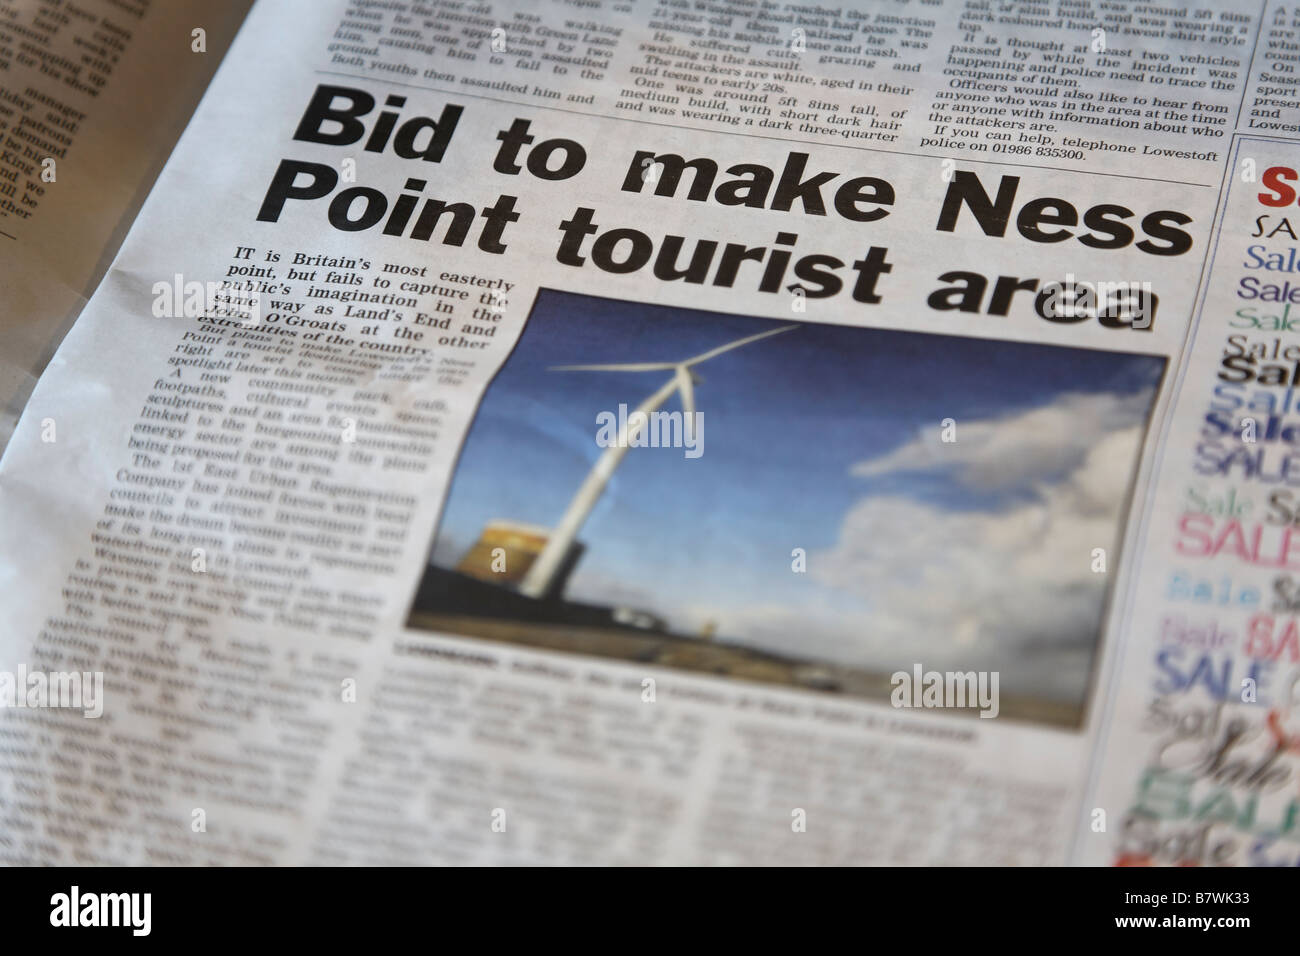 Lowestoft Journal newspaper article about making Ness Point a tourist area Suffolk England - Stock Image